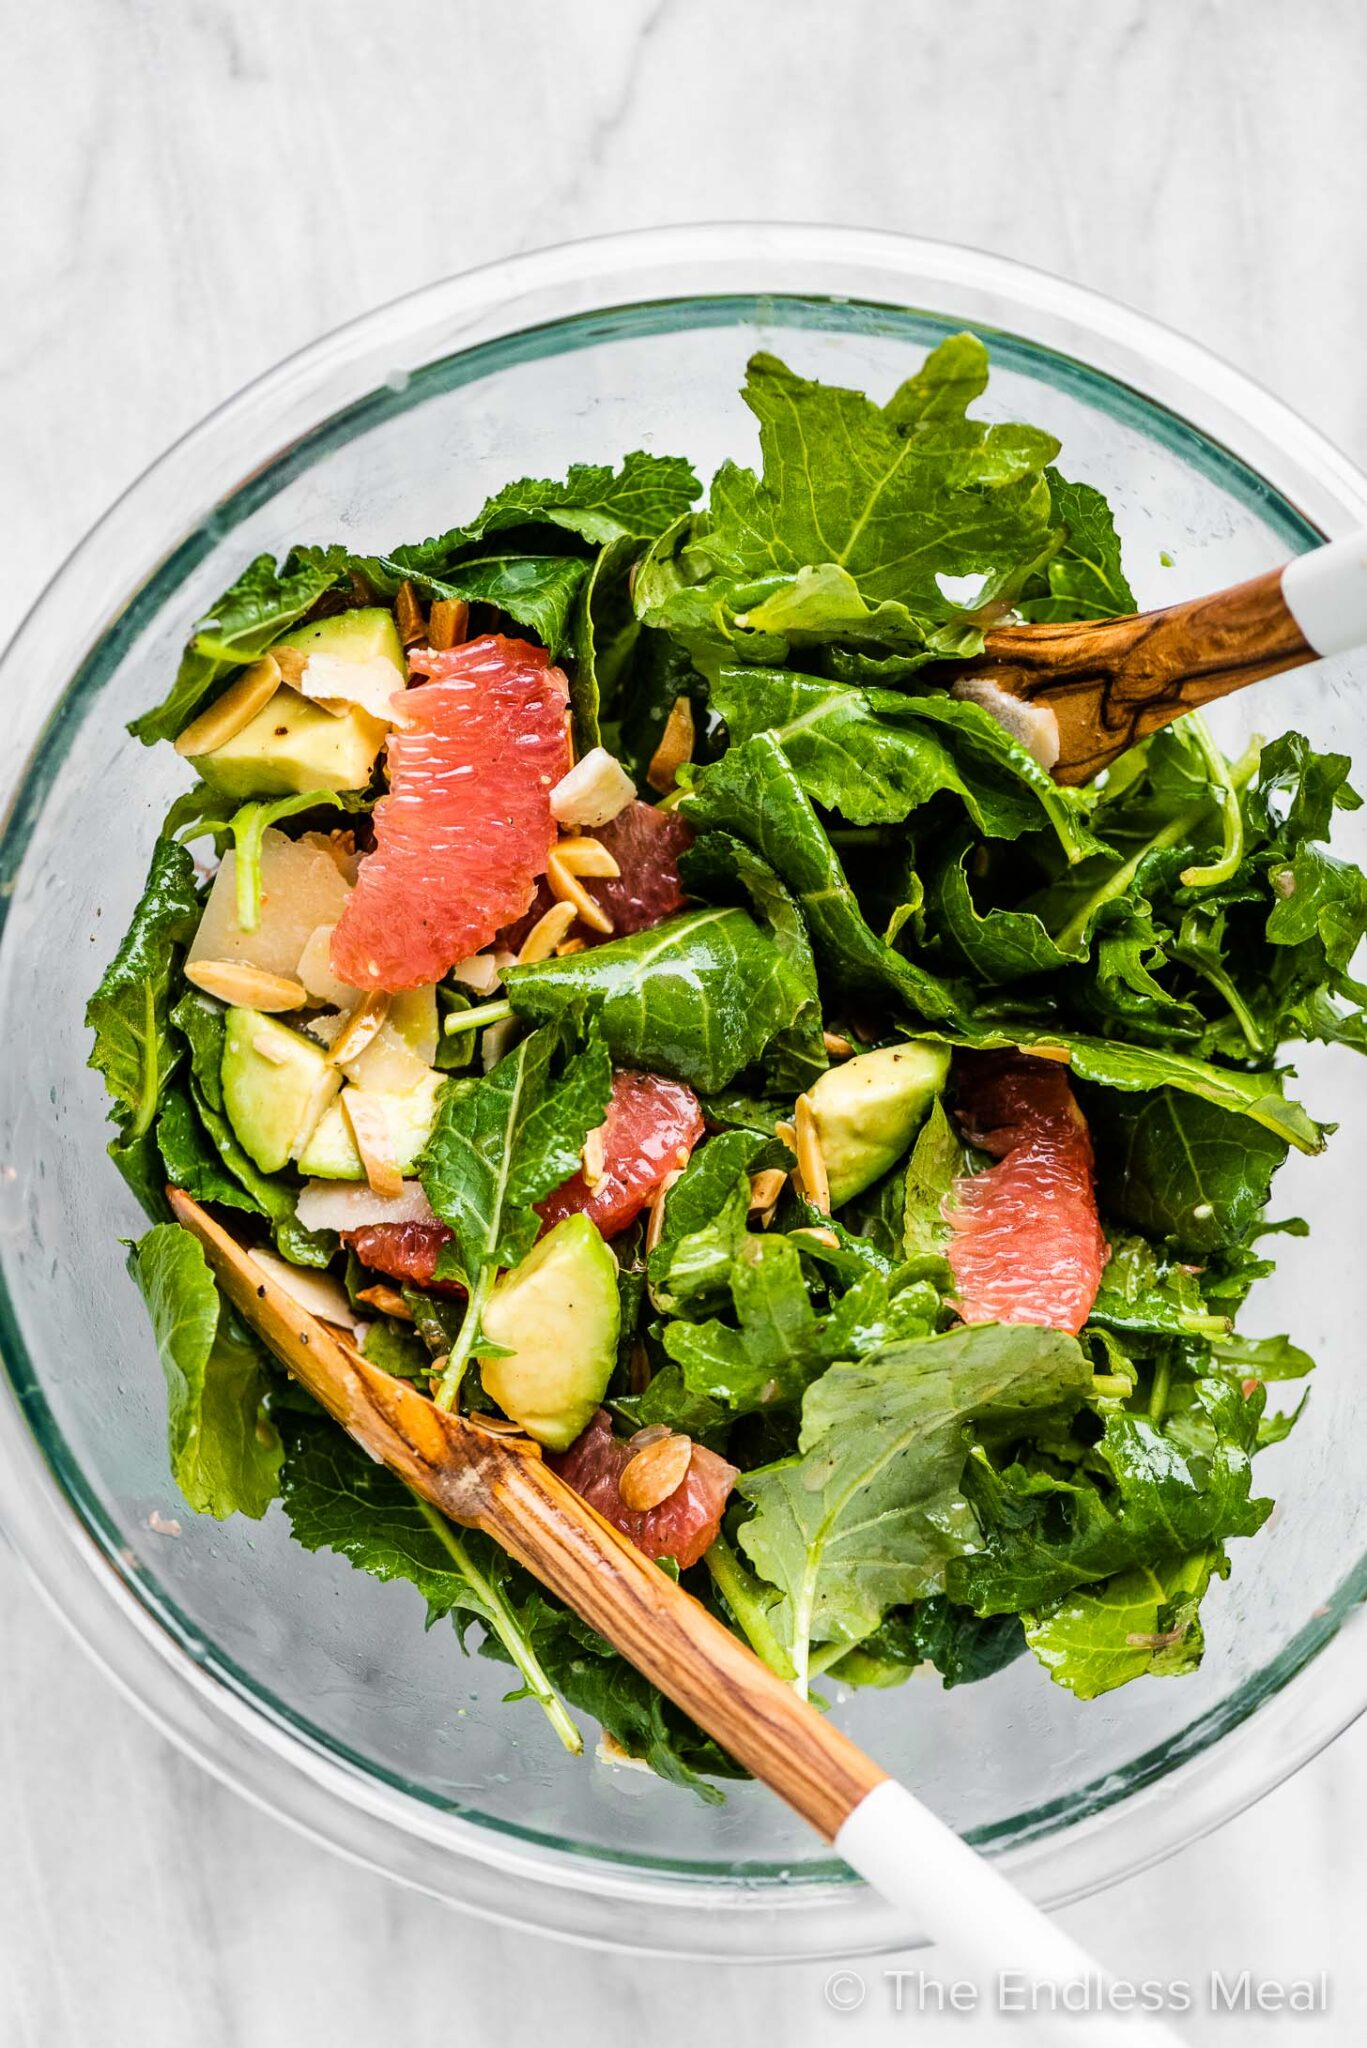 Baby kale salad in a bowl with grapefruit, avocados, and almonds.